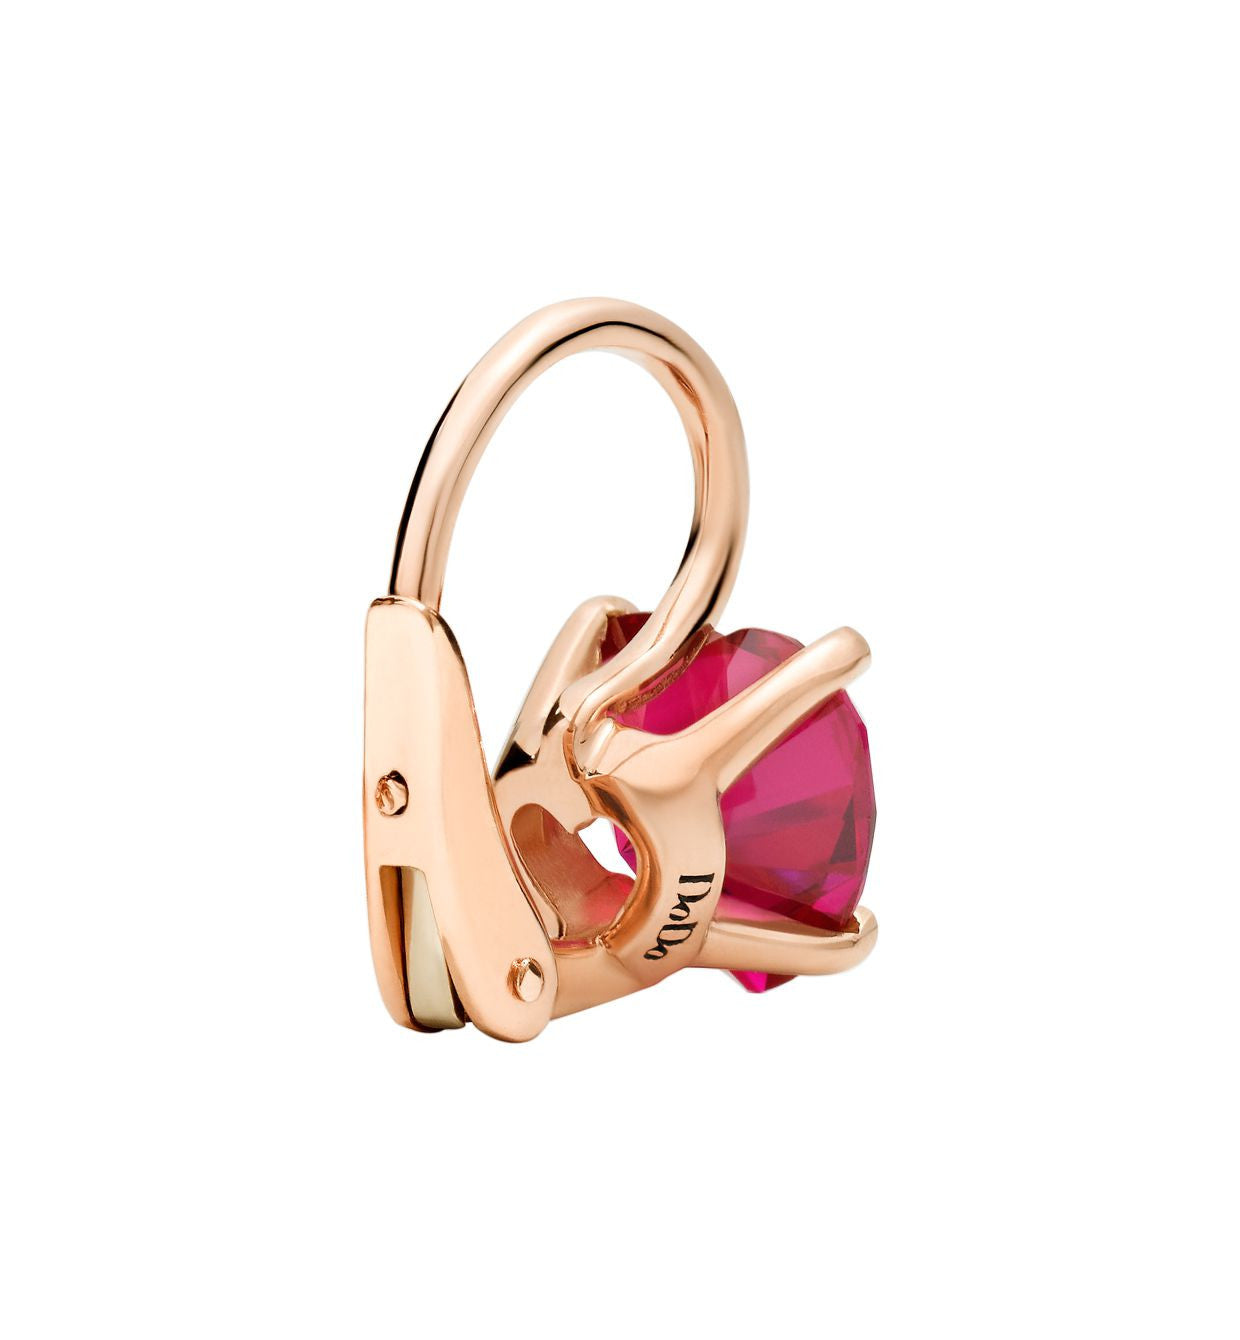 DoDo 100% Amore Earrings in 9k Rose Gold with Synthetic Ruby - Orsini Jewellers NZ